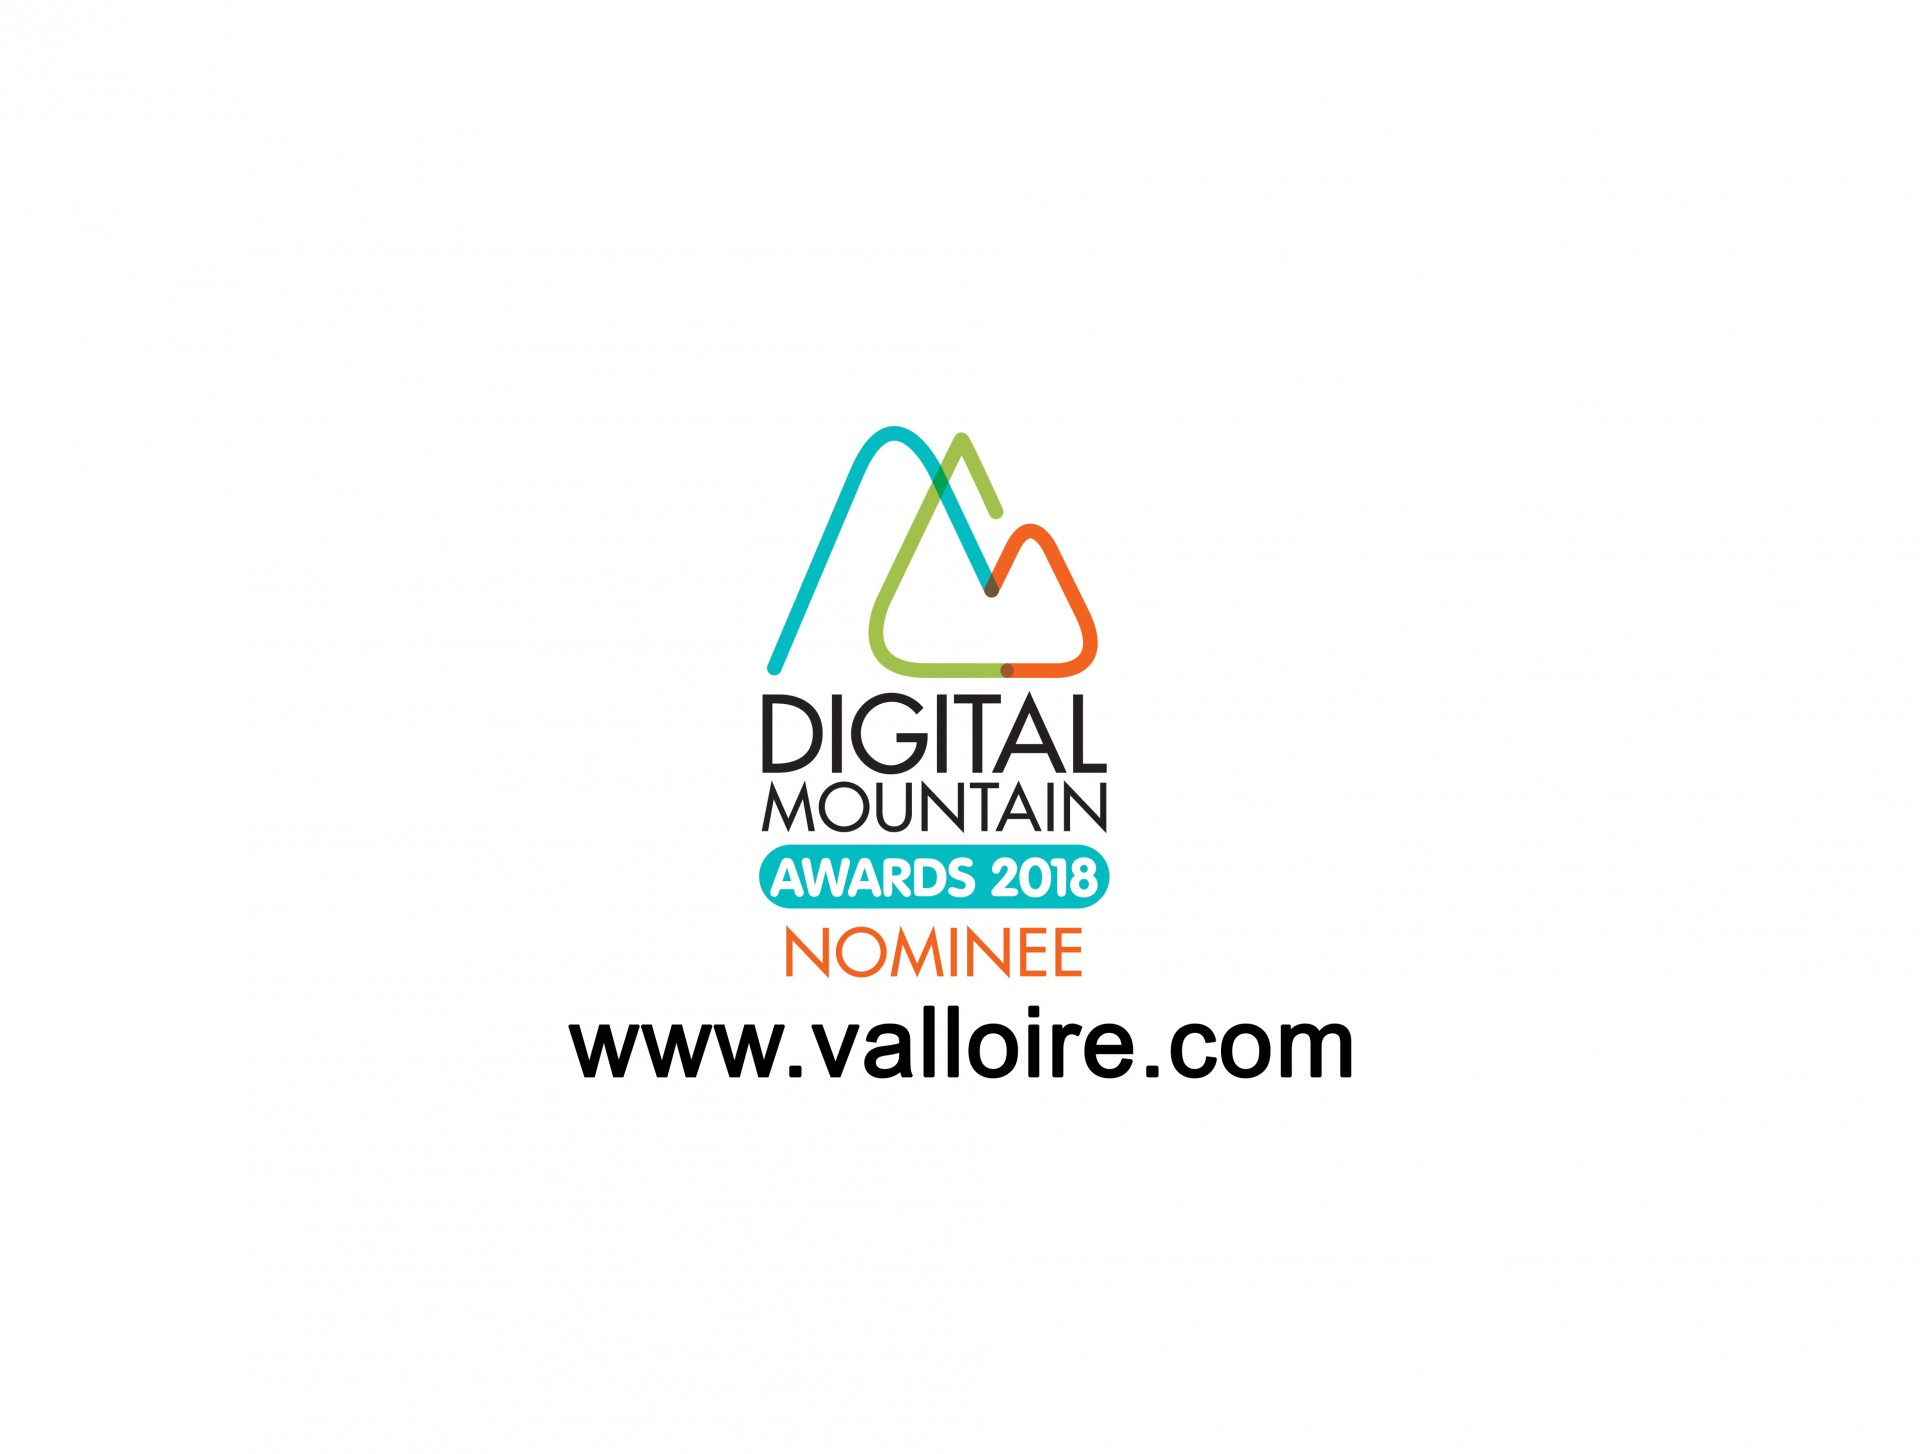 Mountain Planet digital-awards-2018-nominee-valloire